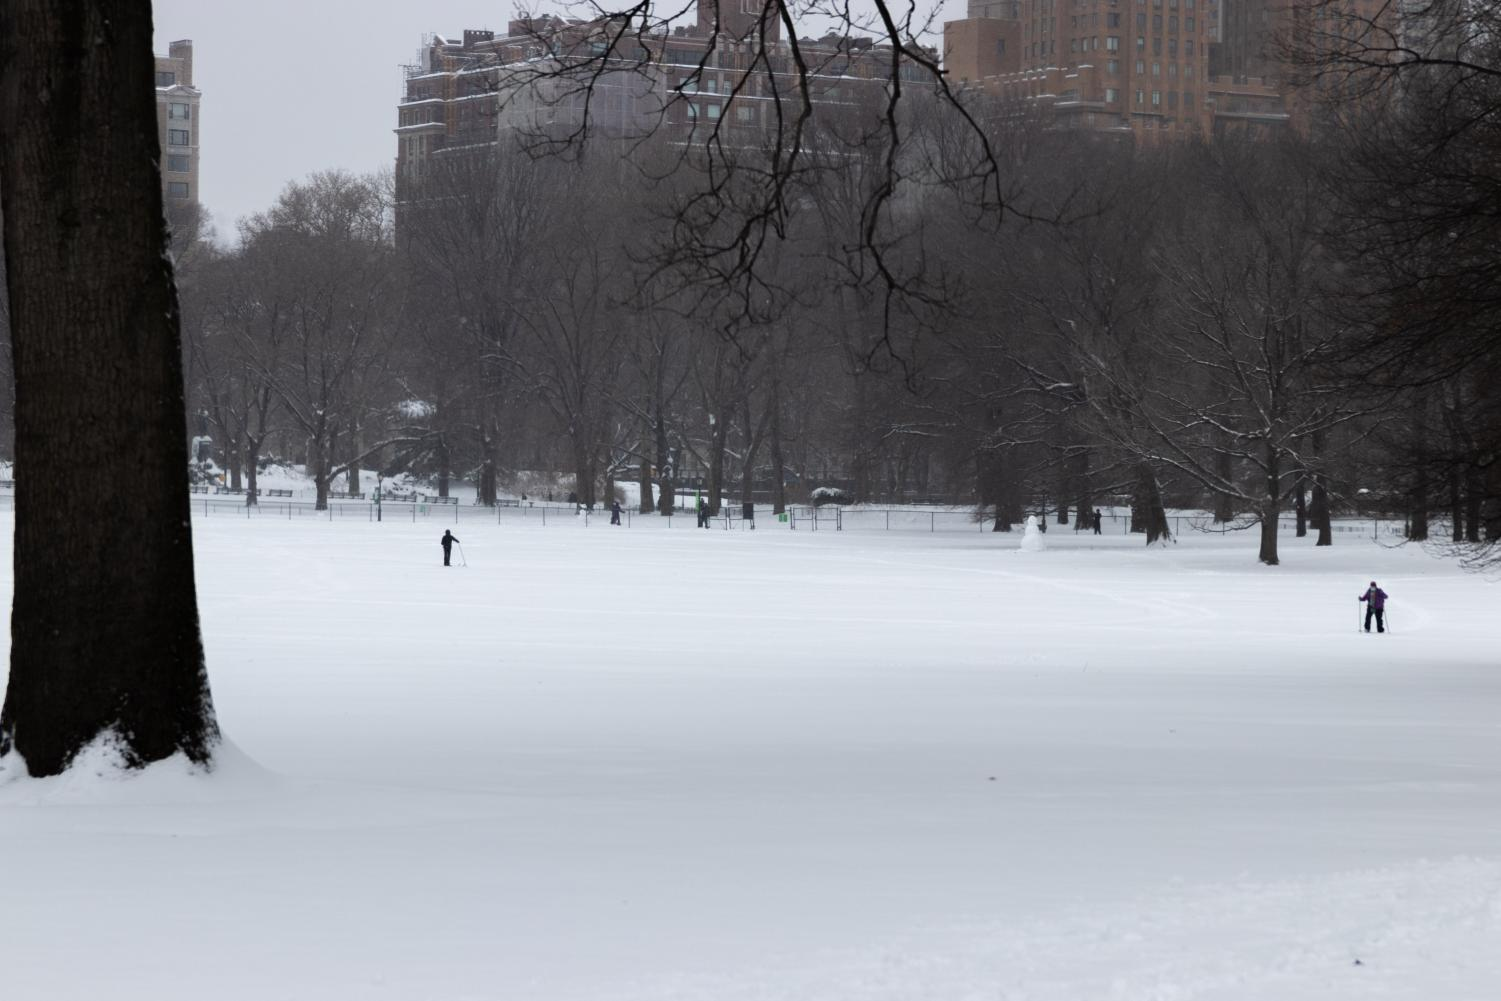 a blanket of snow covers a meadow in Central Park